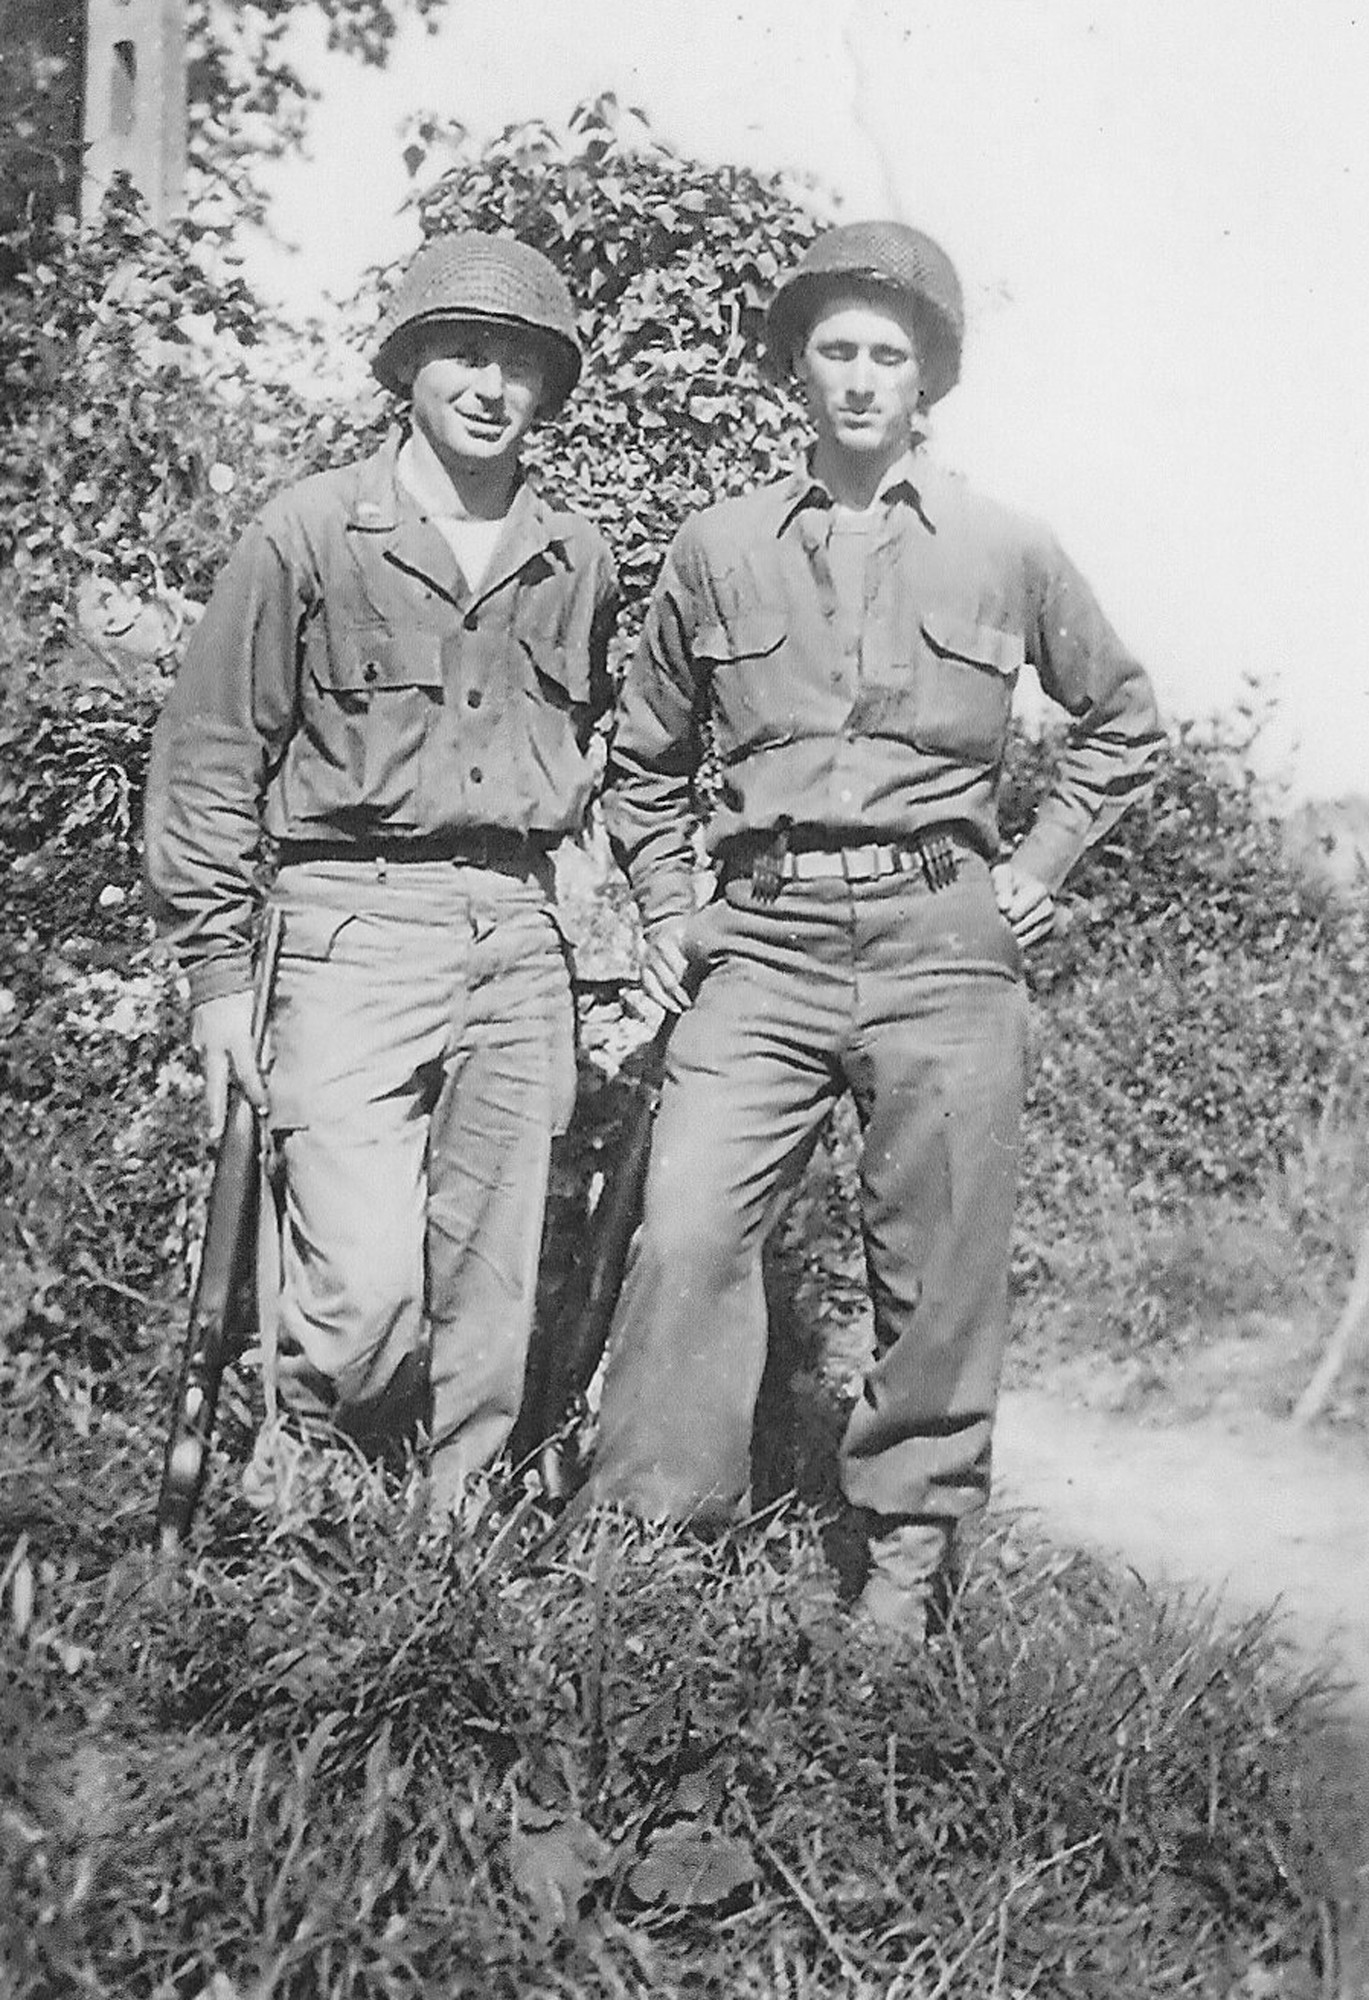 Sim Wright, right, stands with a fellow infantryman during World War II.